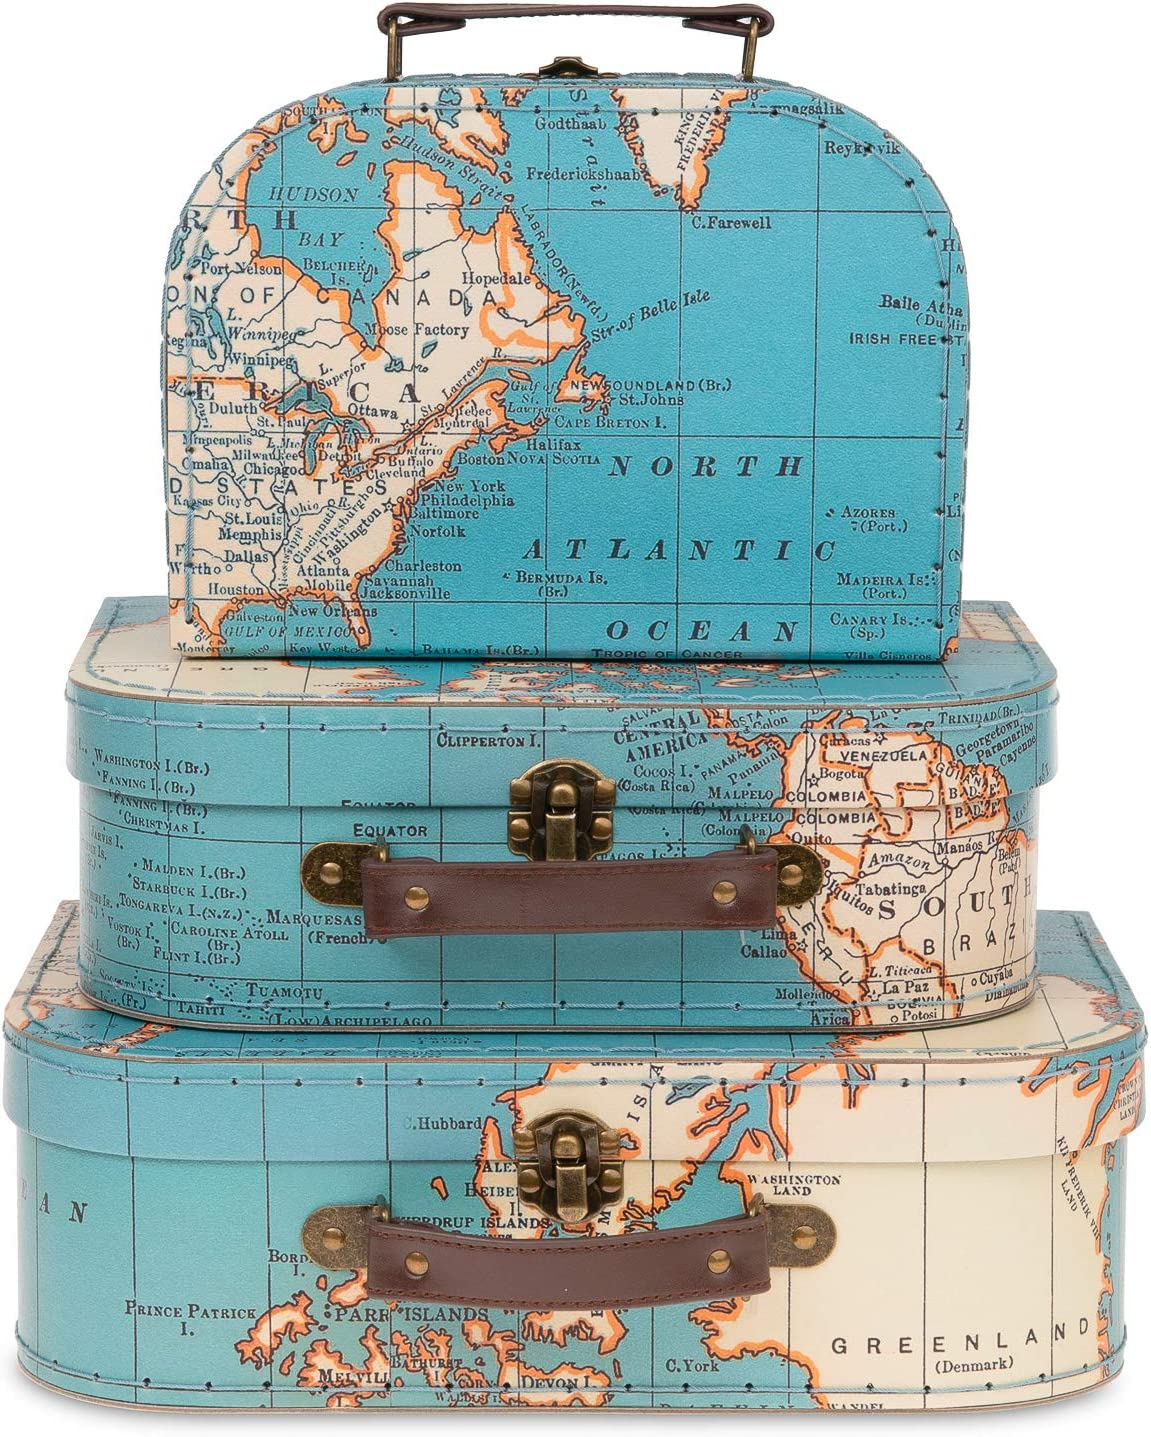 Jewelkeeper Paperboard Suitcases, Set of 3 – Nesting Storage Gift Boxes for Birthday Wedding Easter Nursery Office Decoration Displays Toys Photos – Vintage World Map Design